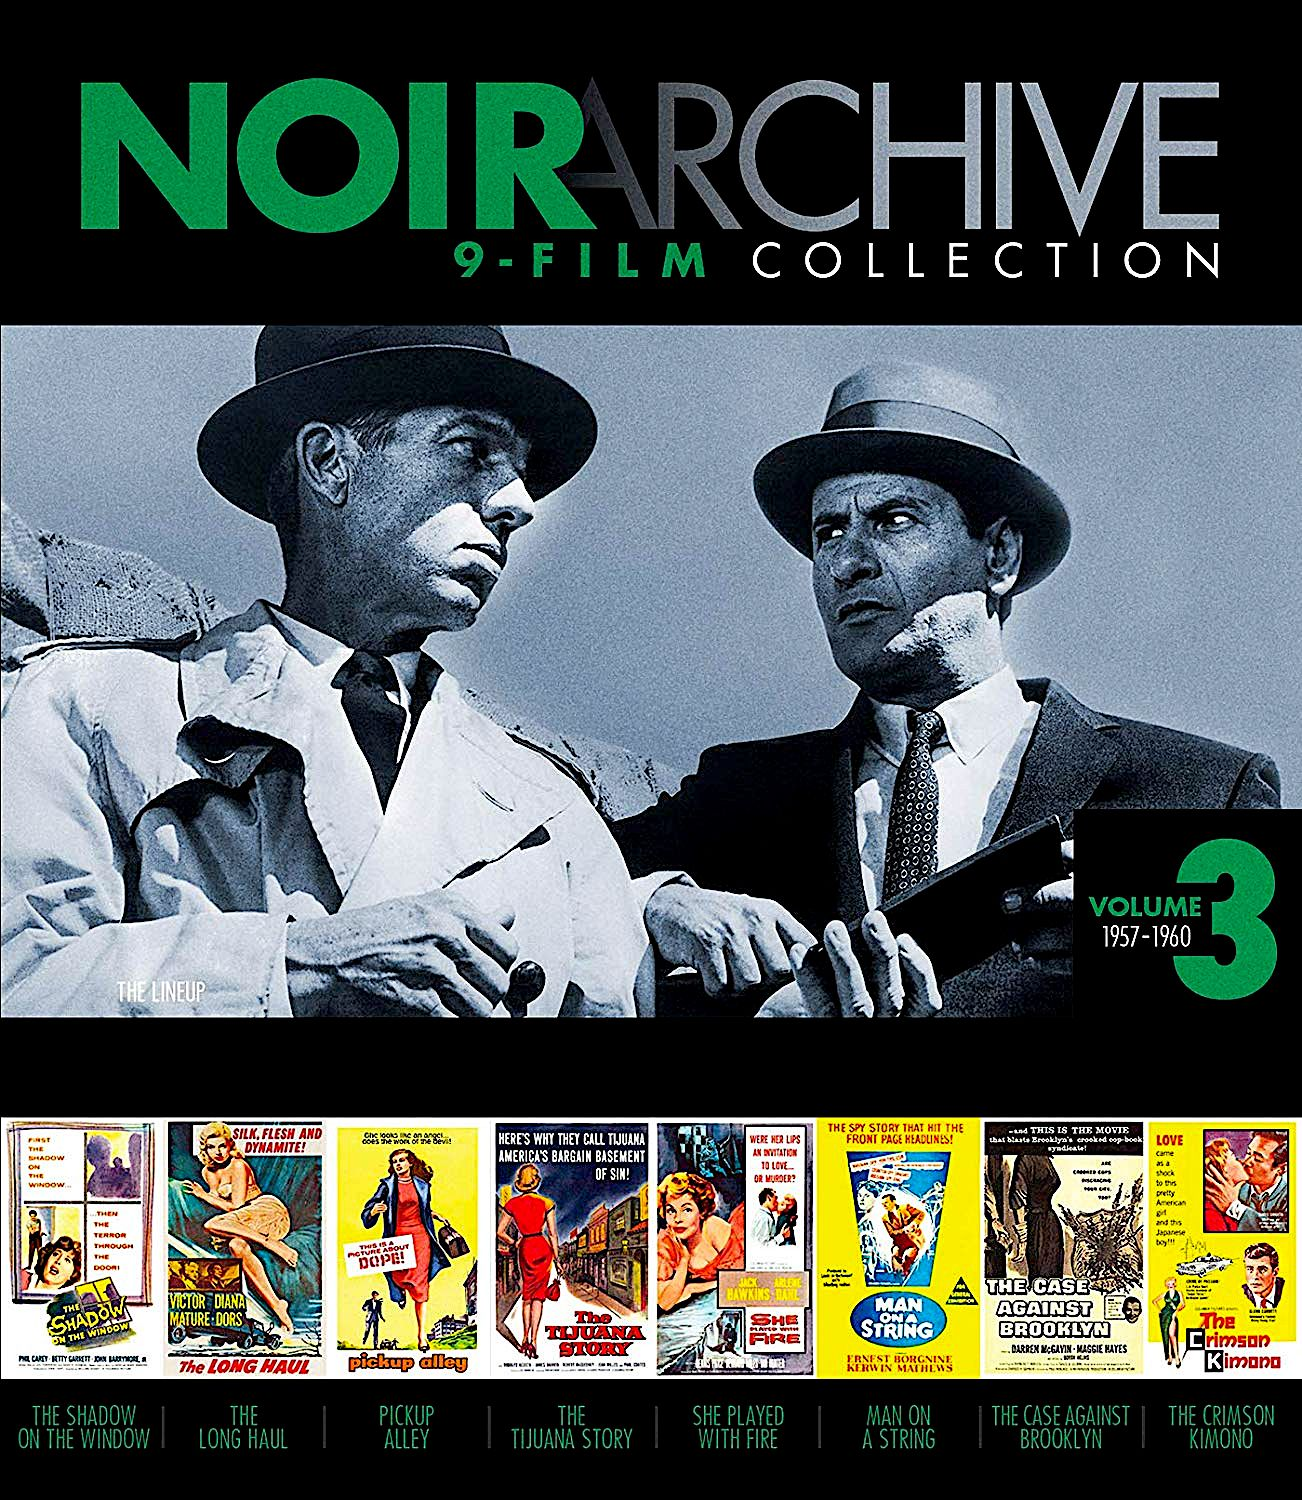 Noir Archive Volume 3 1957 1960 9 Film Collection The Shadow On